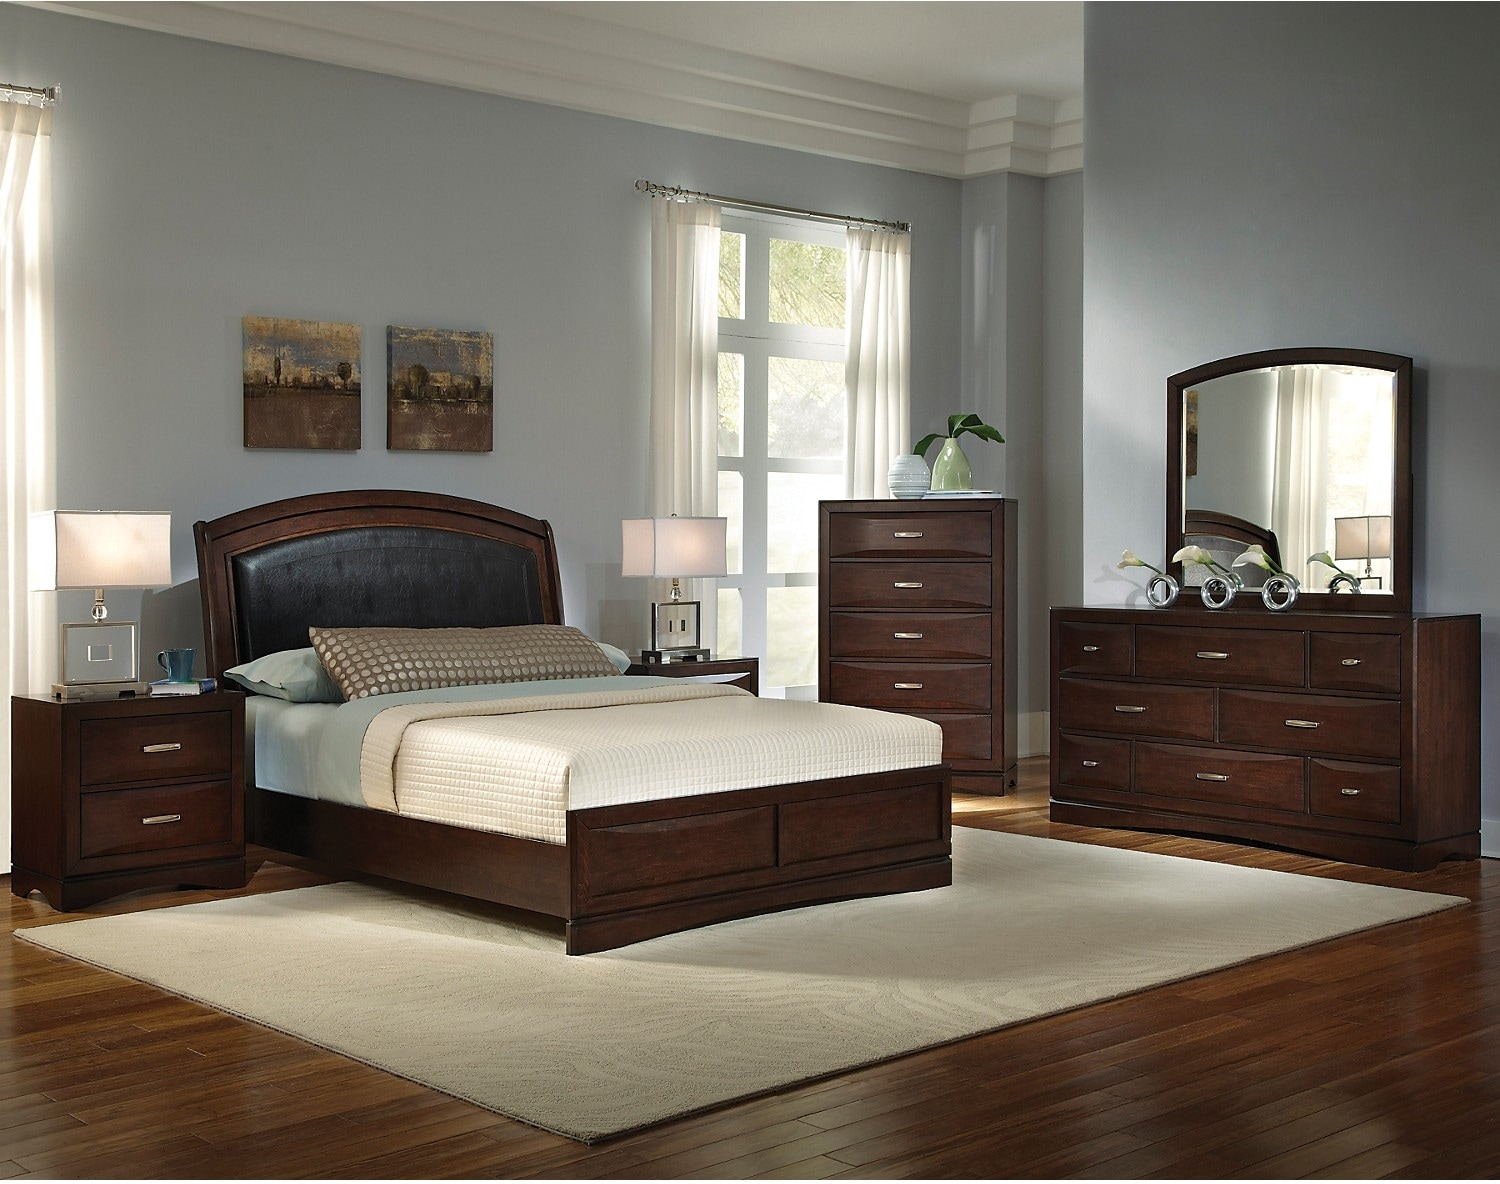 Bedroom Furniture - Beverly 7-Piece King Bedroom Package